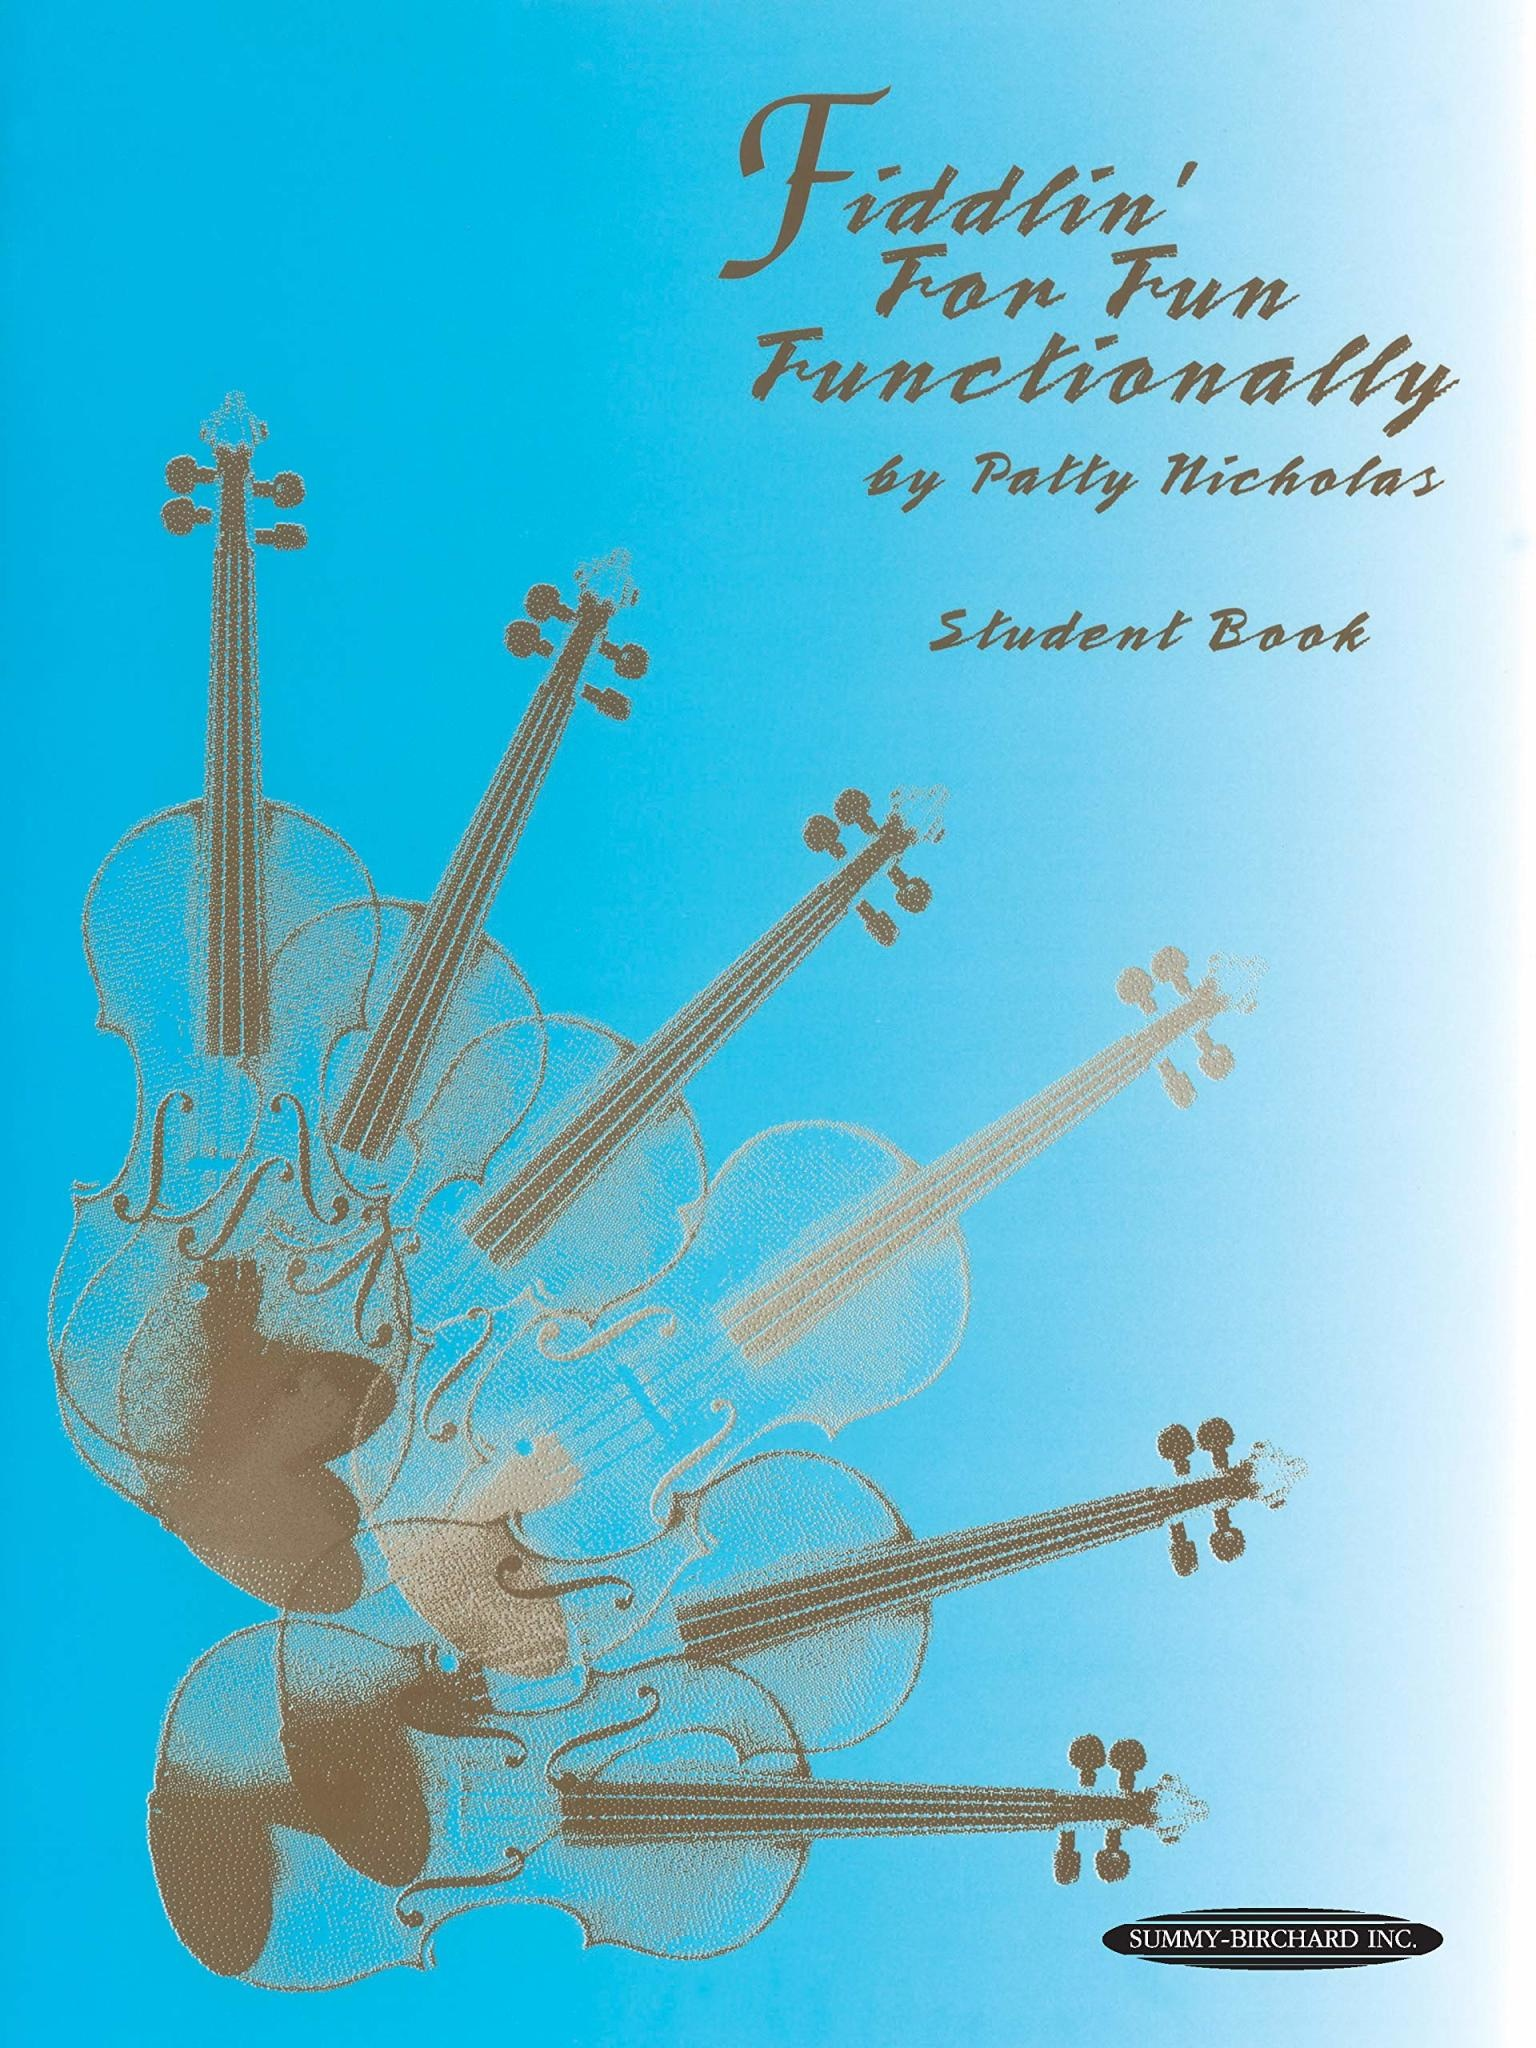 Nicholas, Patty: Fiddlin'for Fun Functionally, Student Book (violin) Summy-Birchard